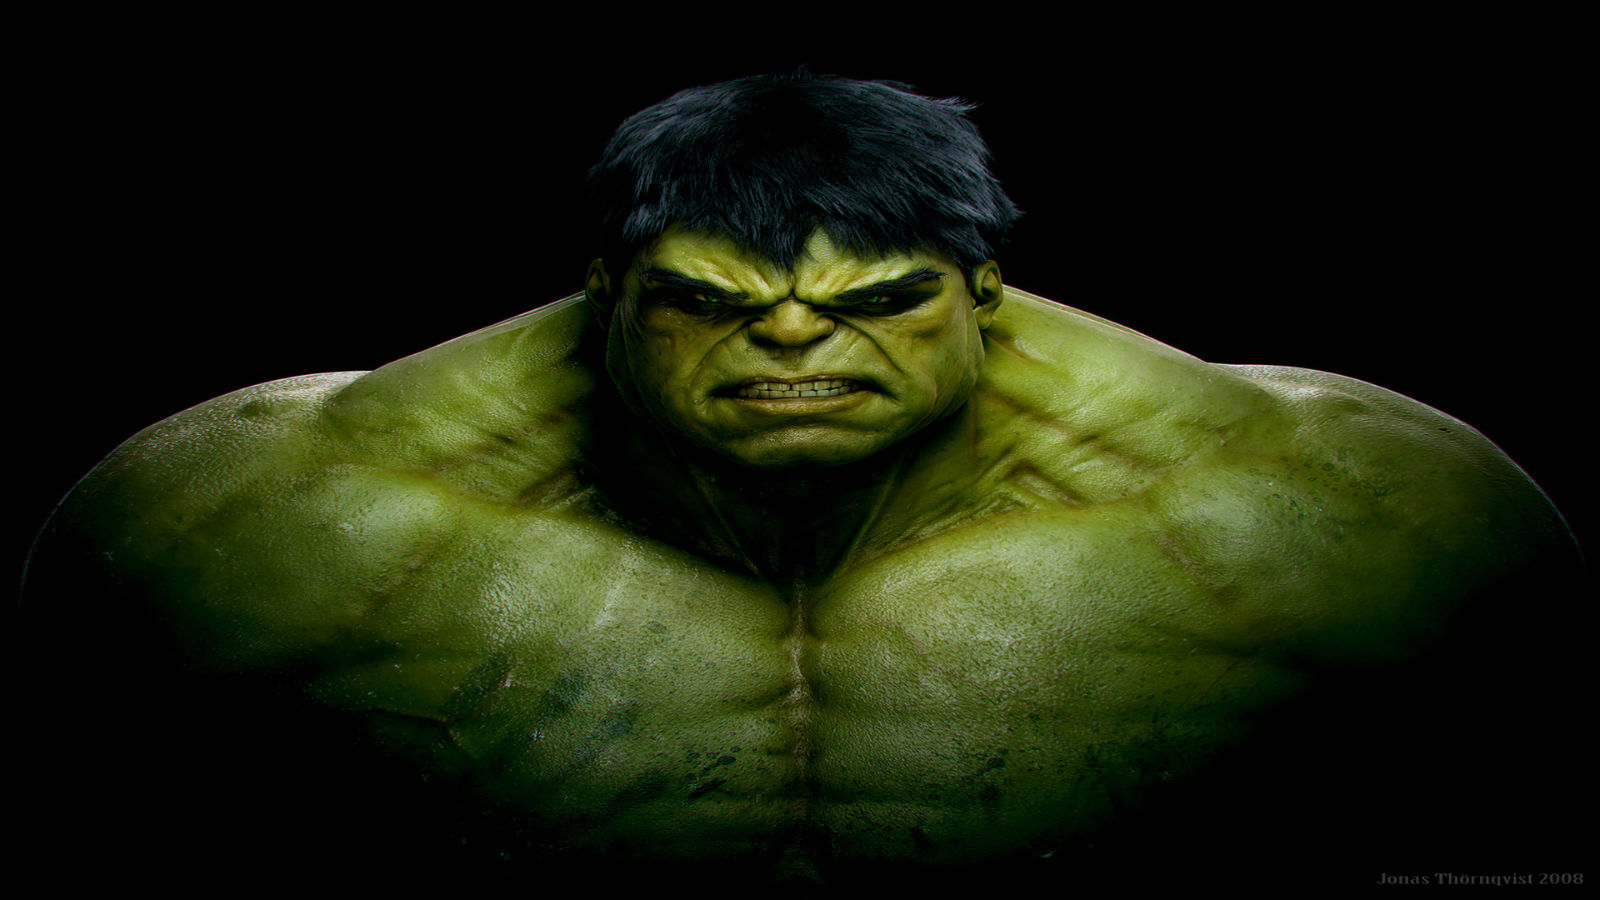 Trololo blogg hulk hd desktop wallpaper - Hulk hd images free download ...